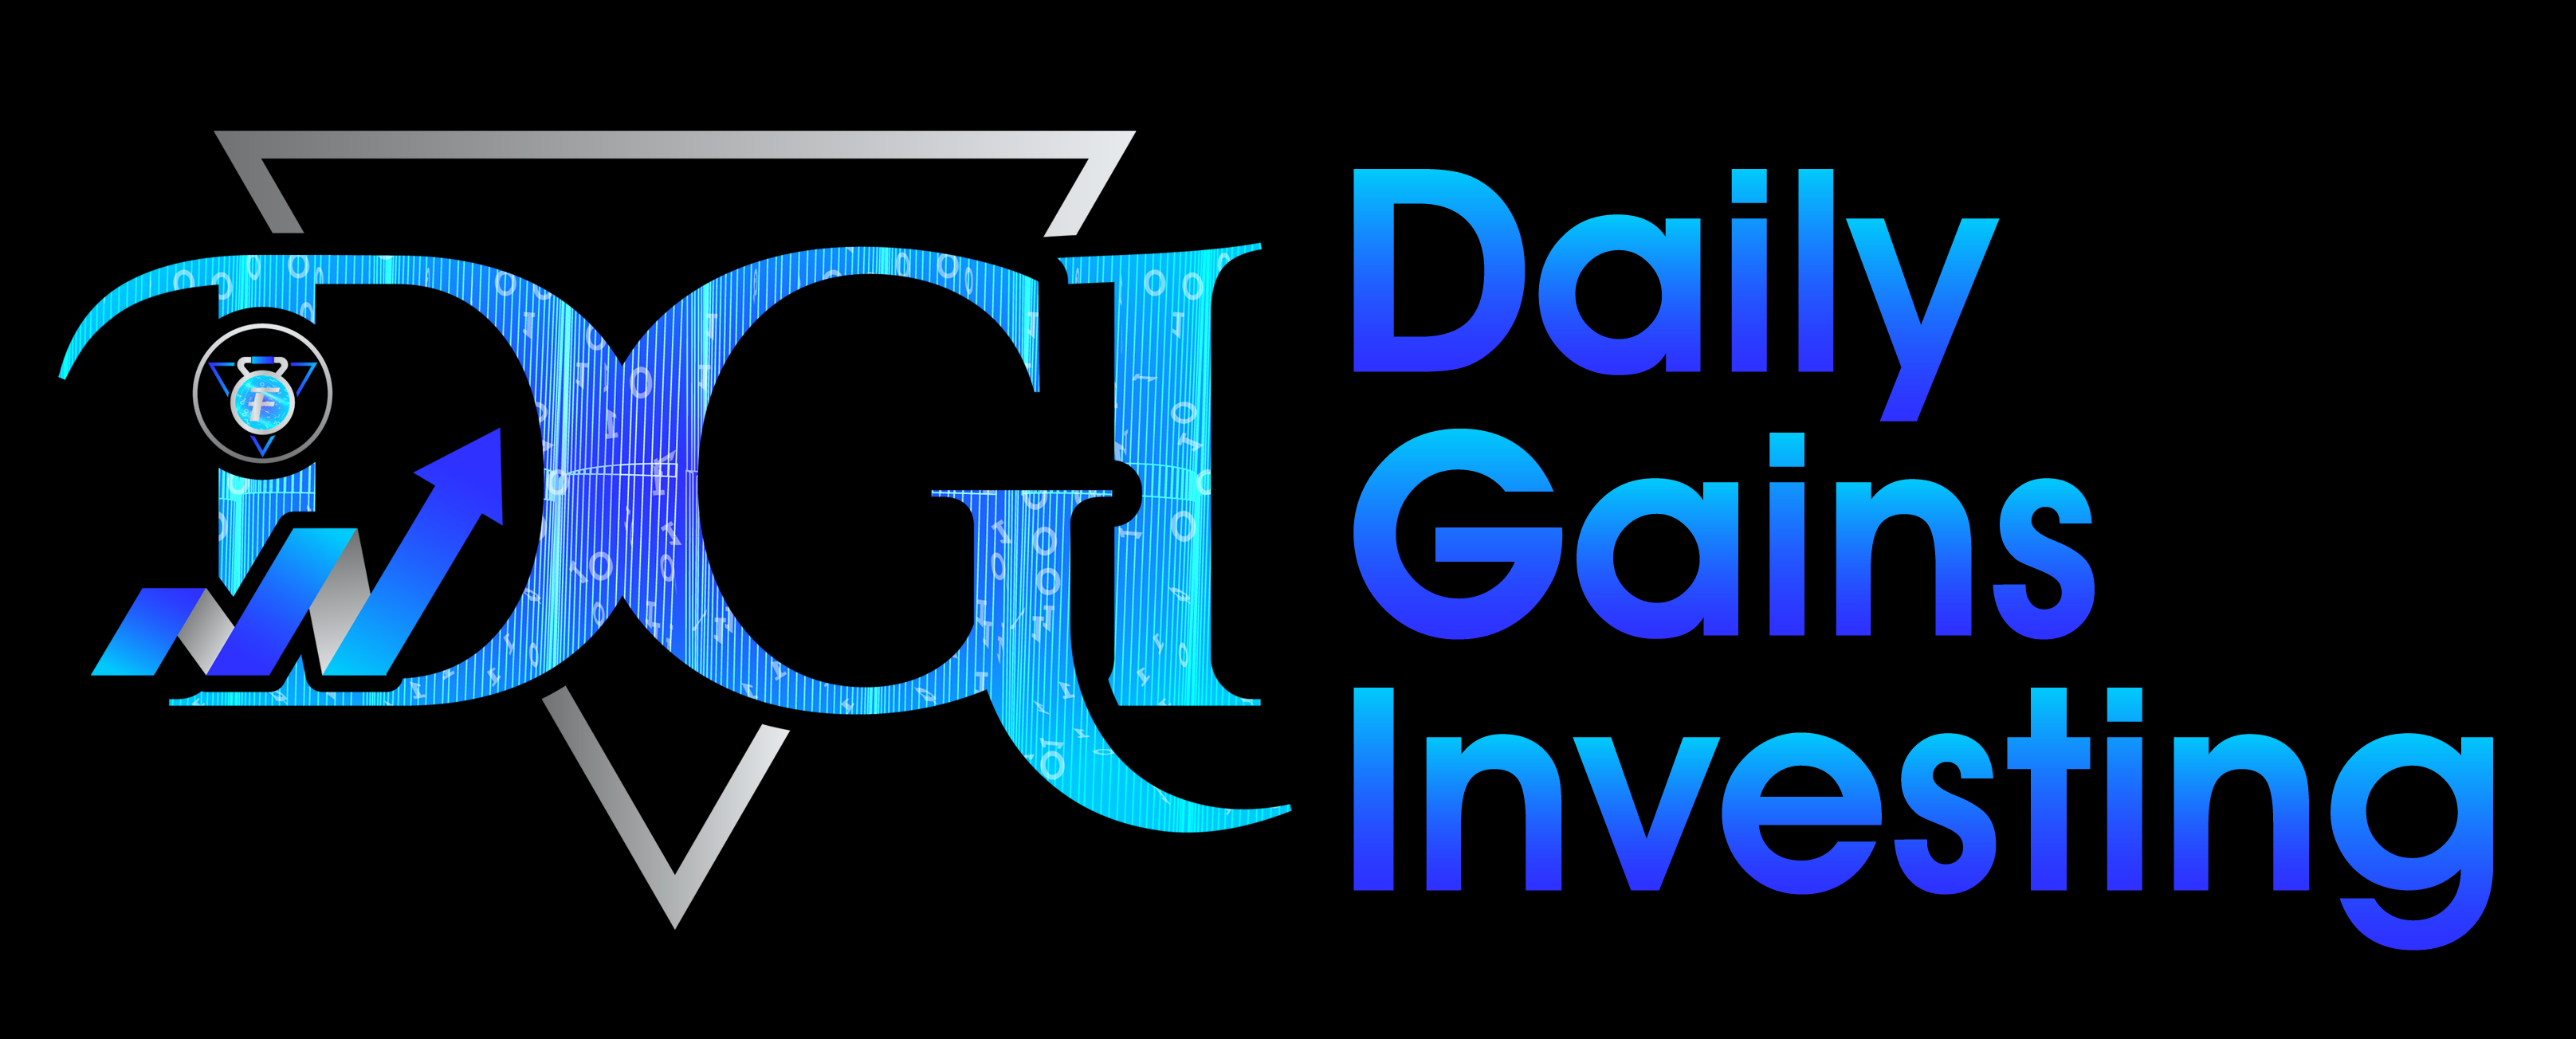 Daily Gains Investing